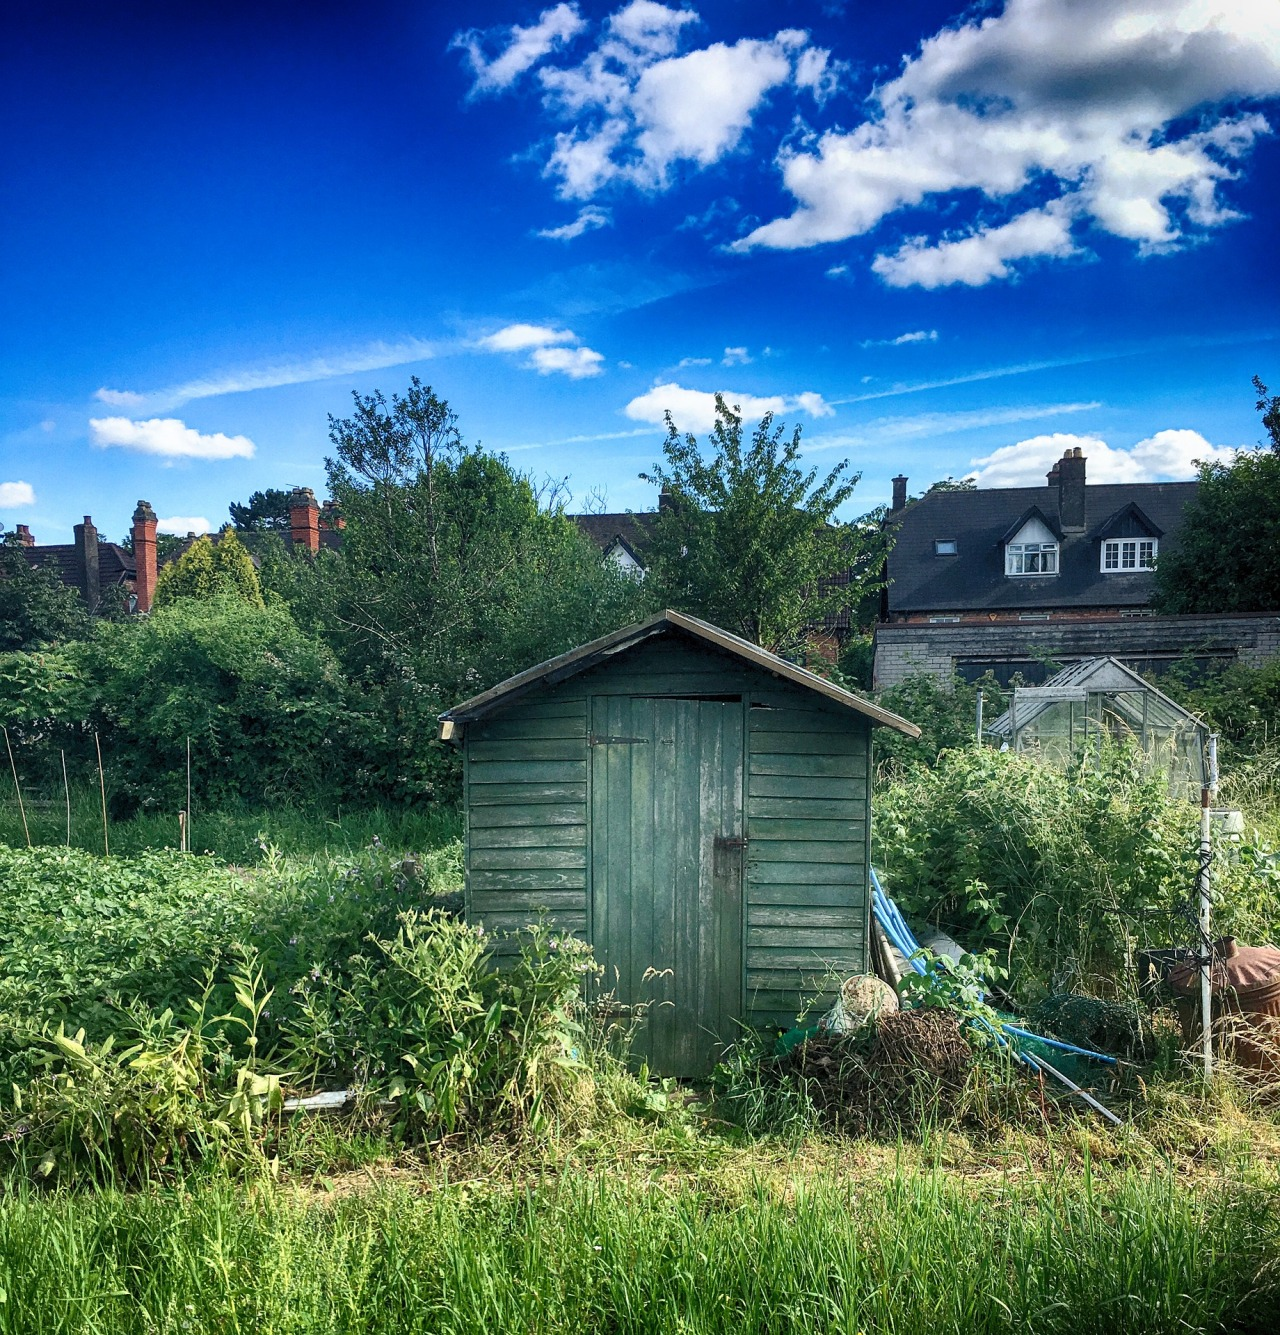 shed-2468298_1920